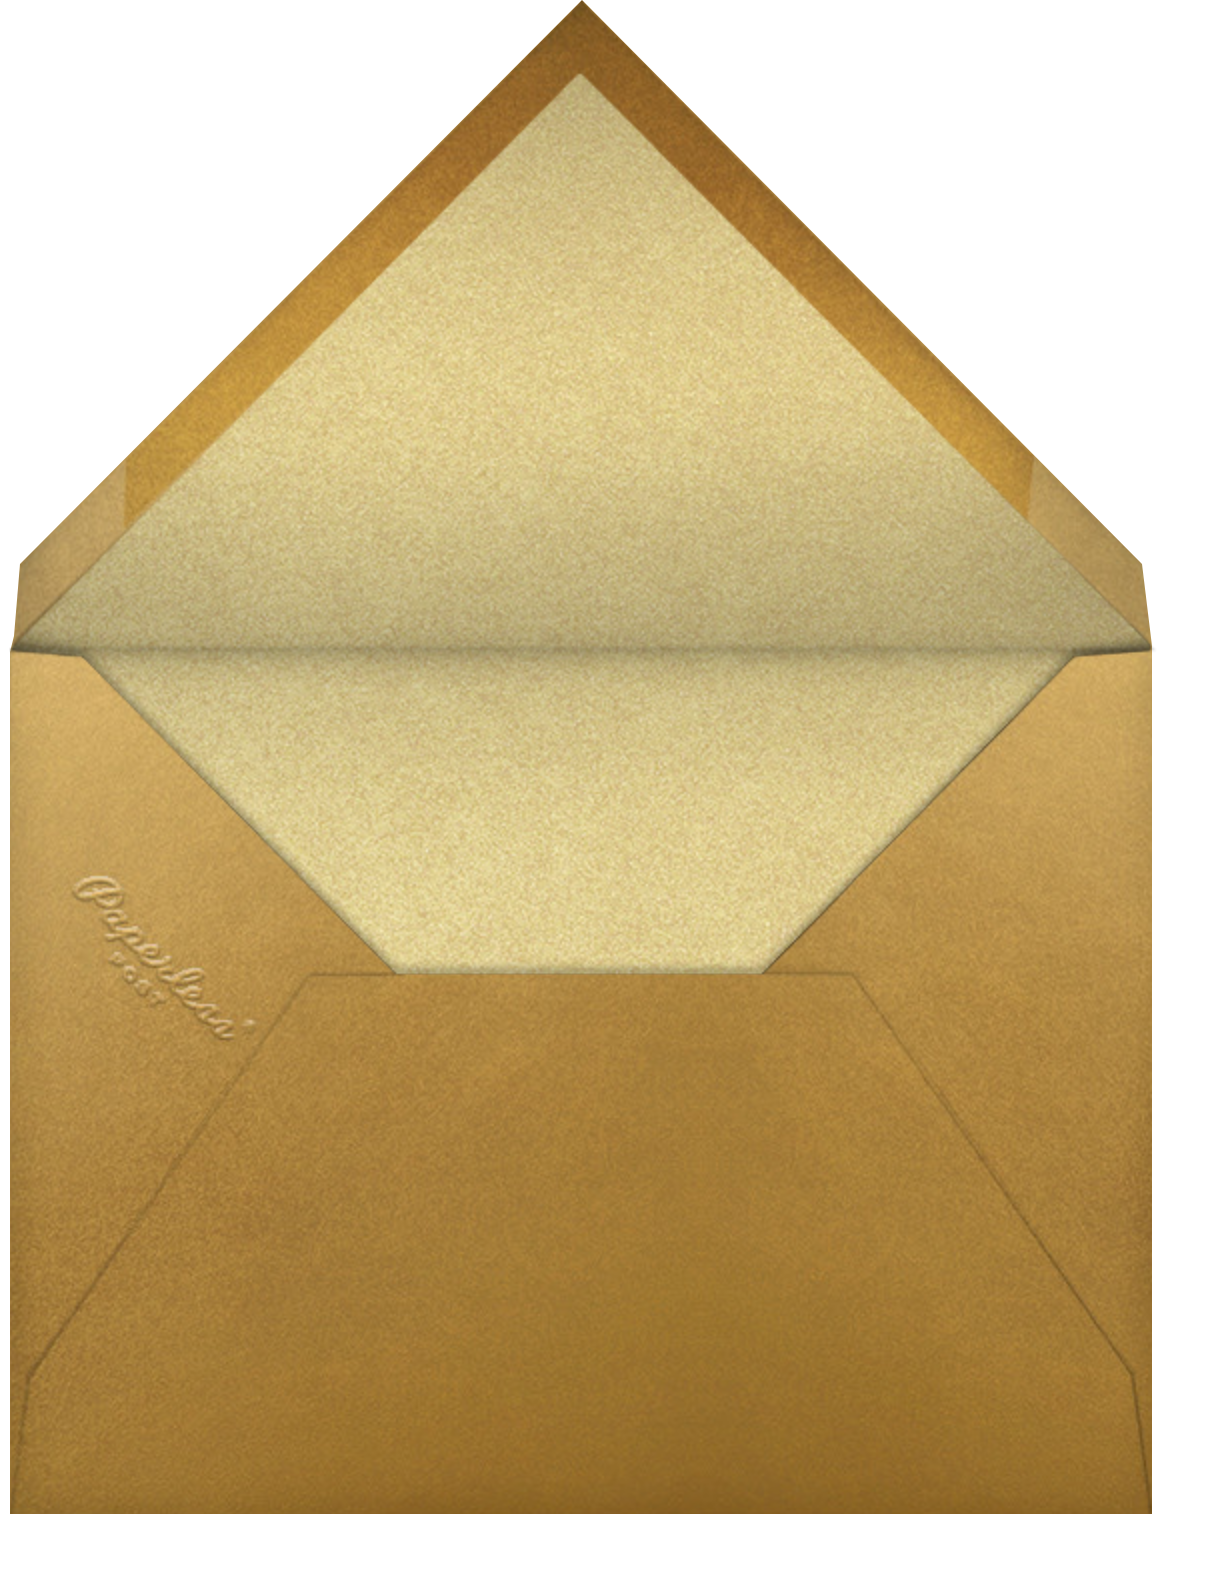 Scrapbooked - Paperless Post - Virtual parties - envelope back